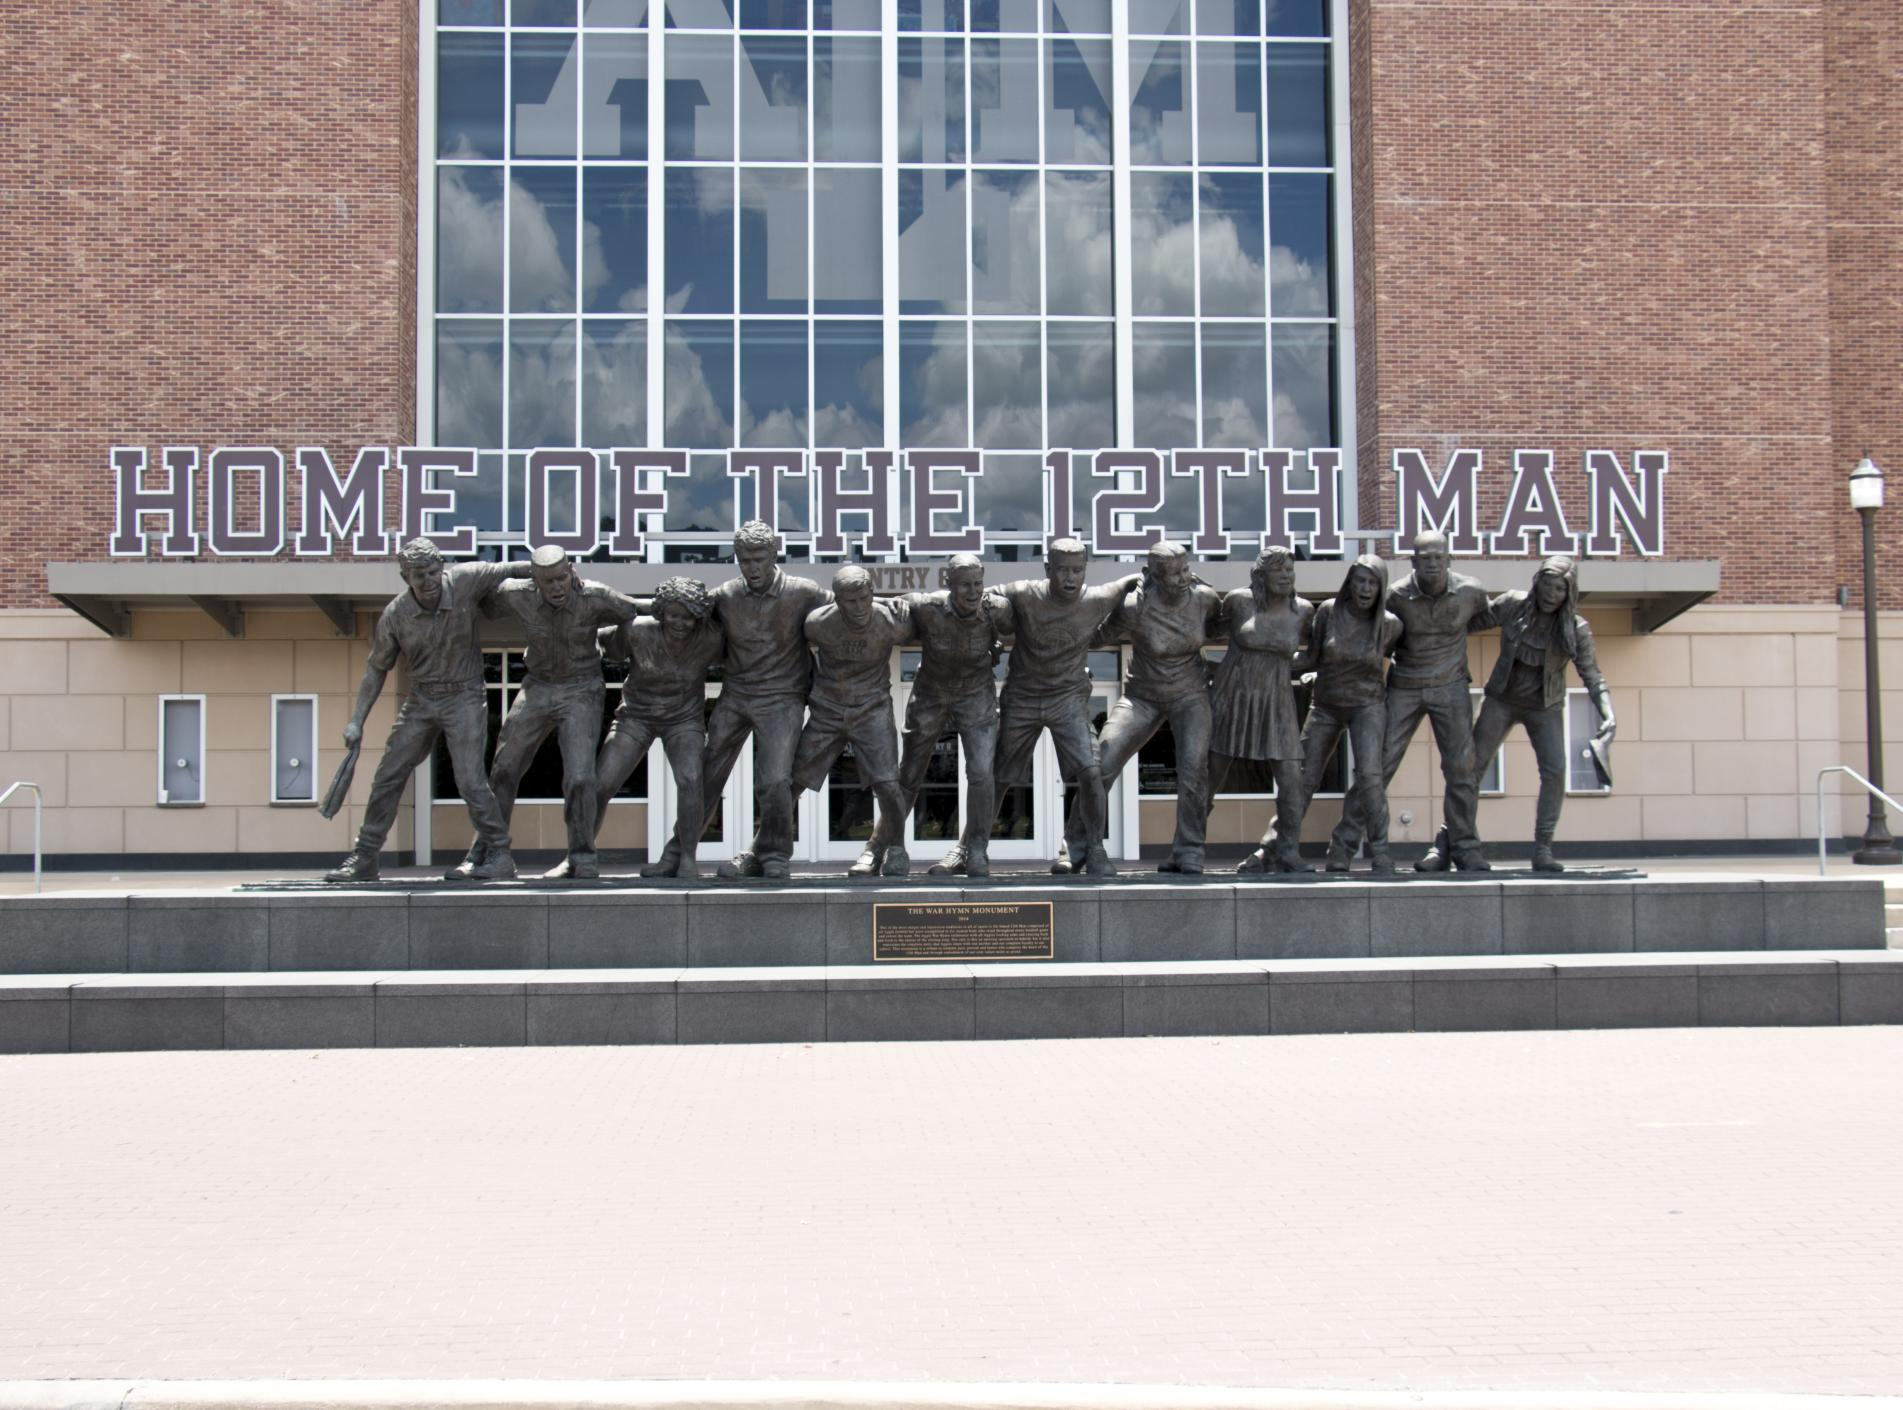 Home Of The 12th Man | Texas A&M University | College Station